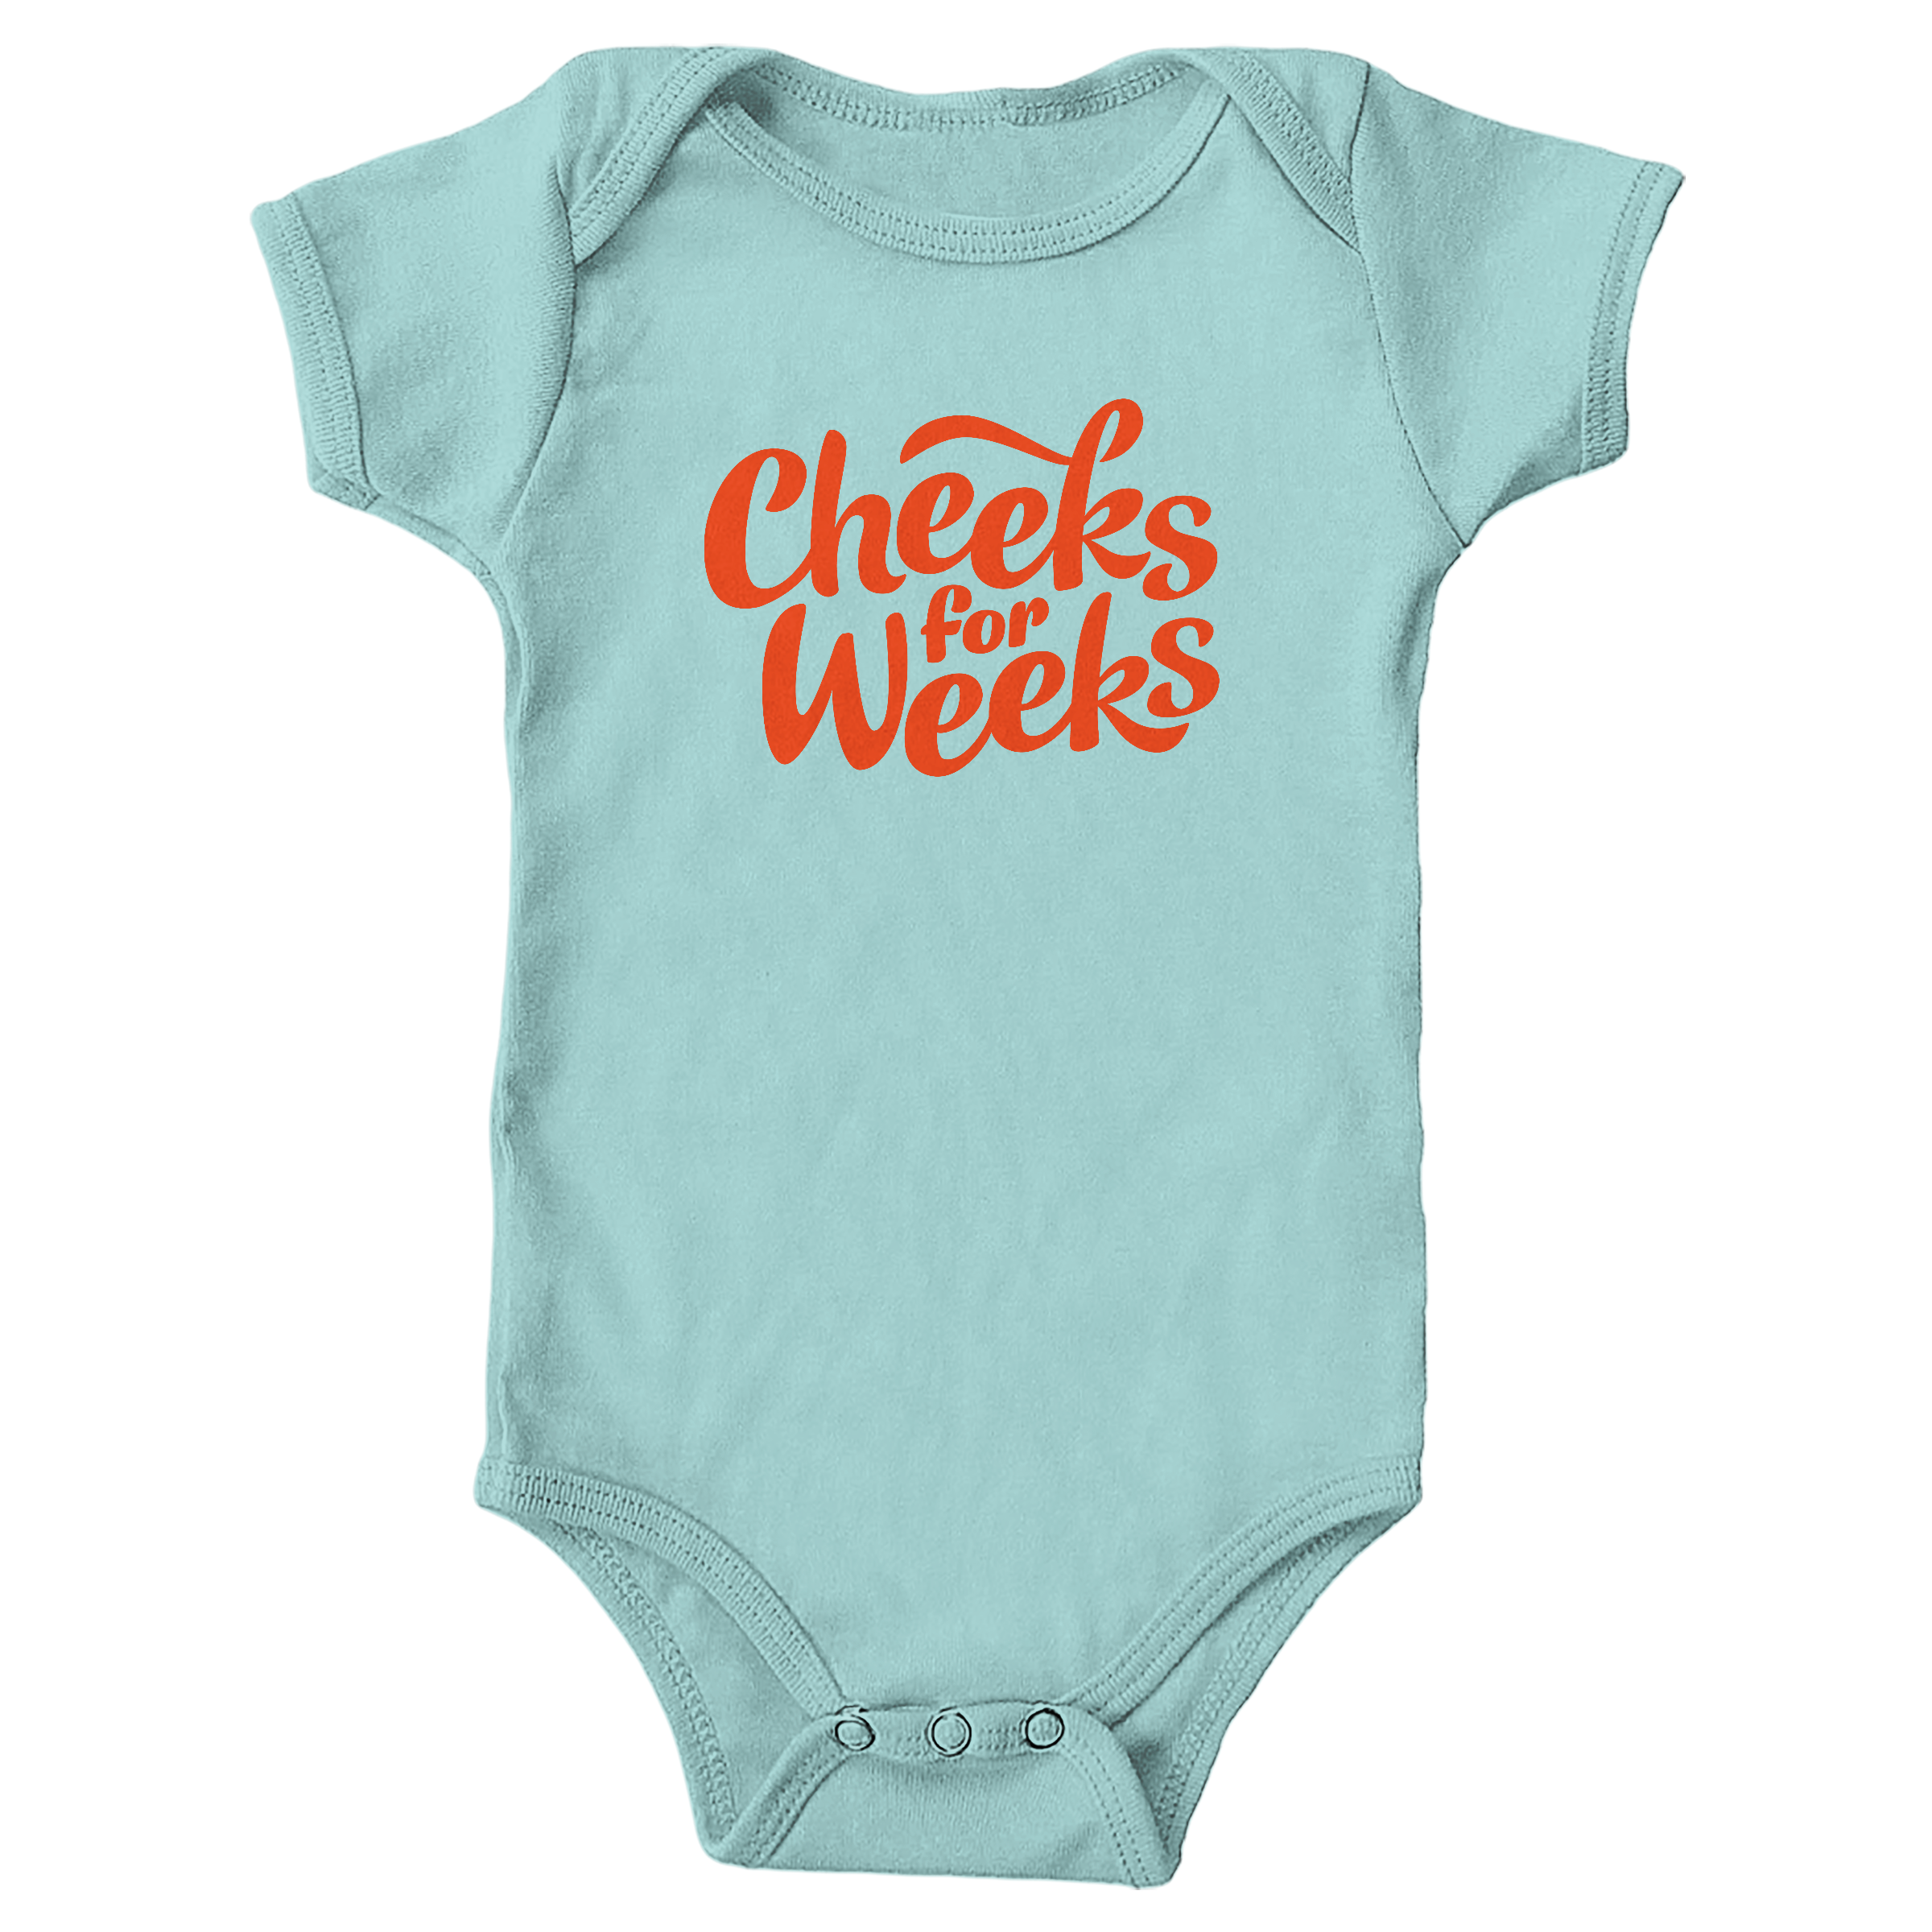 Cheeks for Weeks Chill (Onesie)